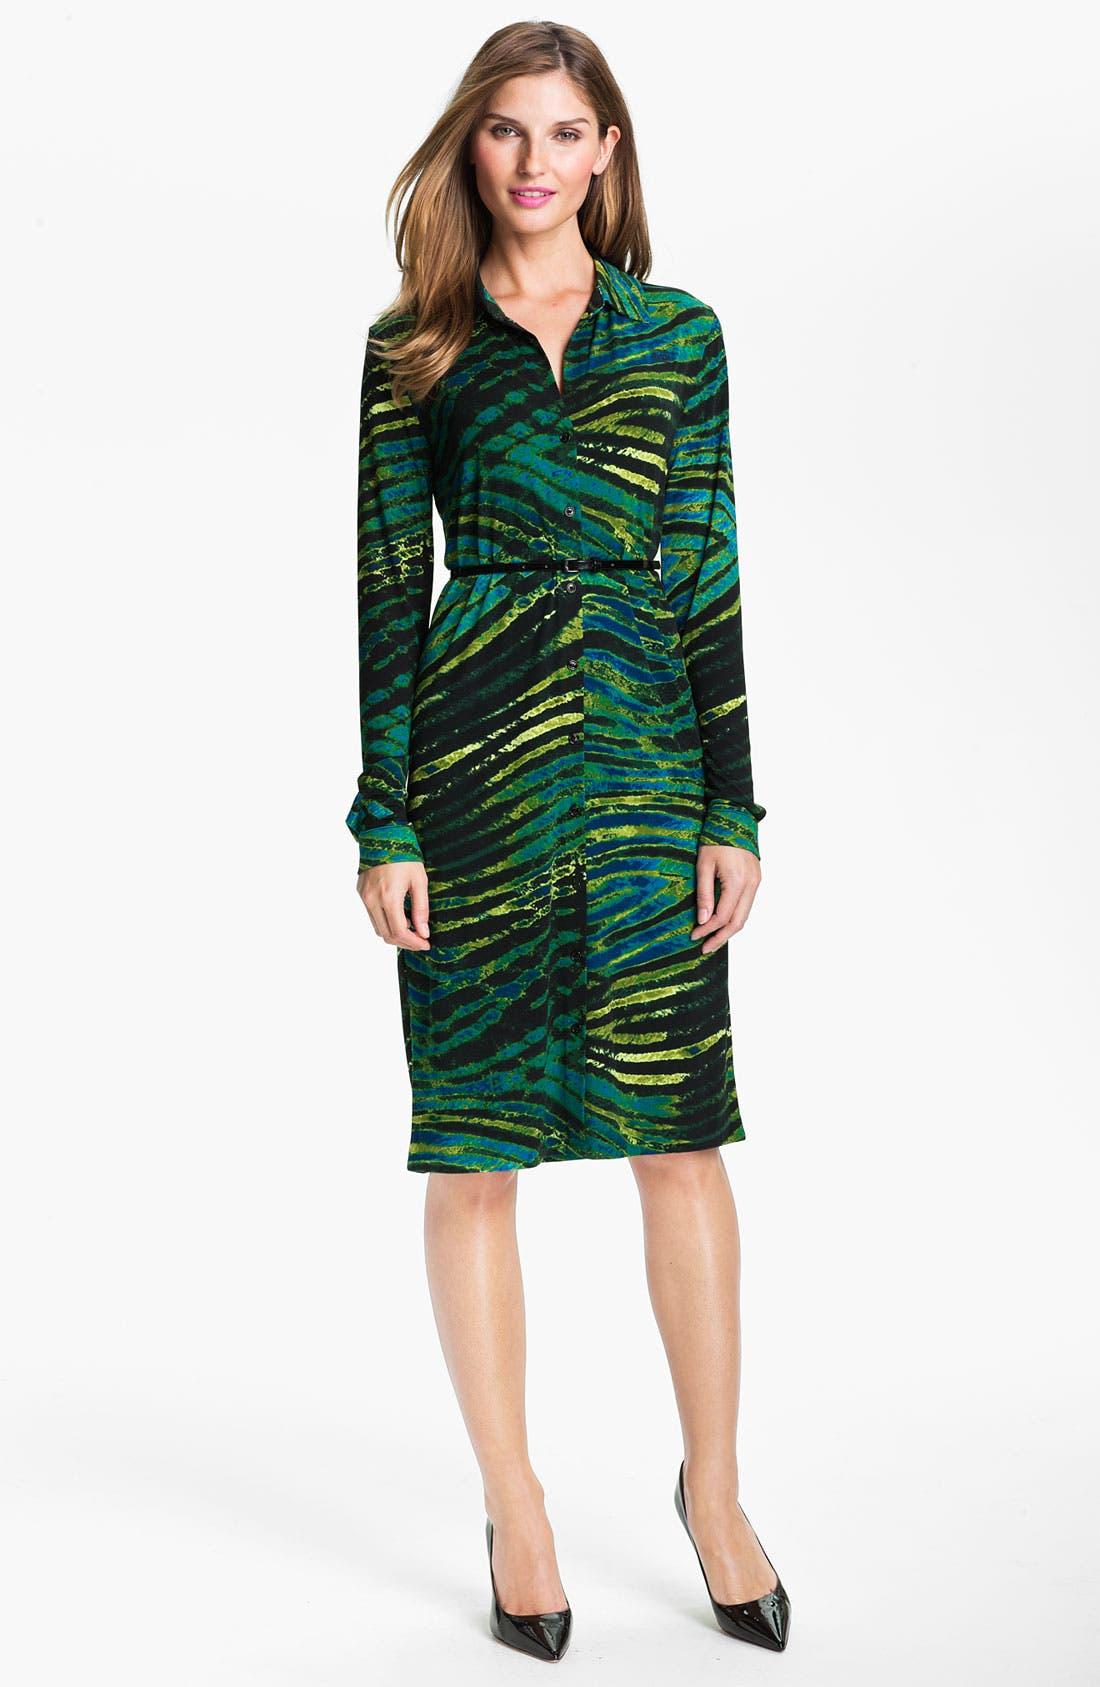 Alternate Image 1 Selected - Anne Klein Print Shirtdress (Online Exclusive)